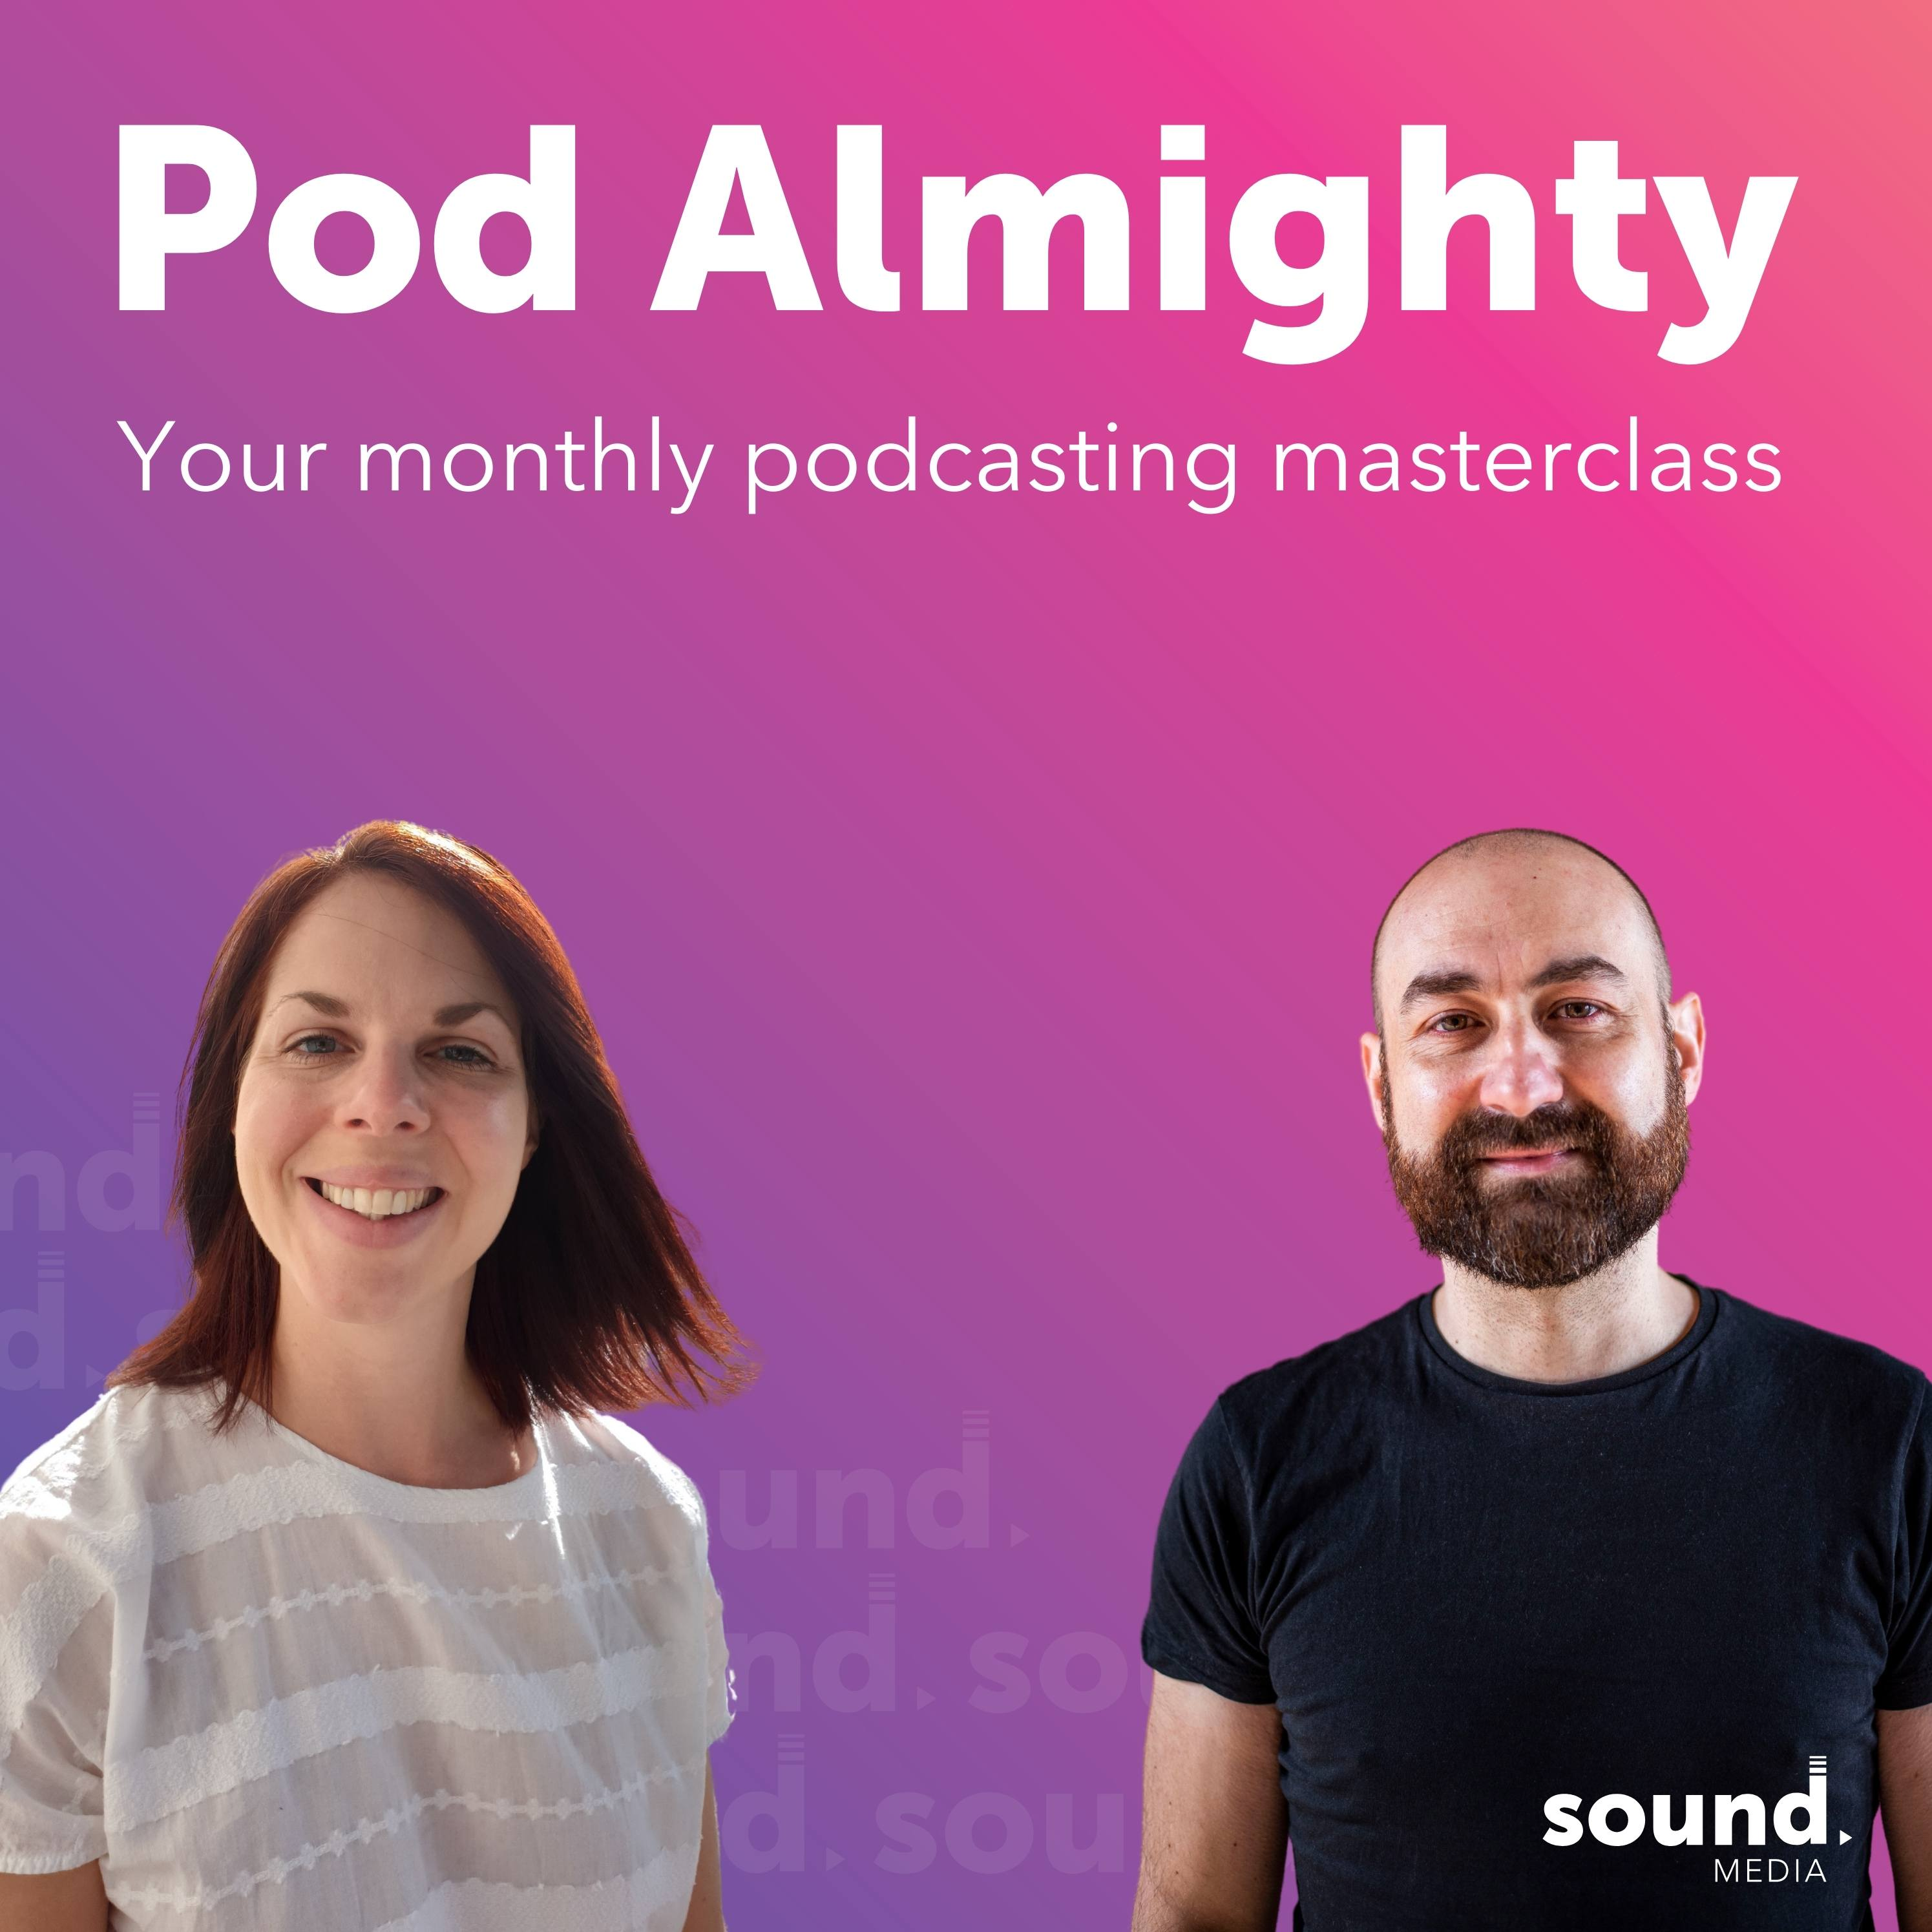 Show artwork for Pod Almighty